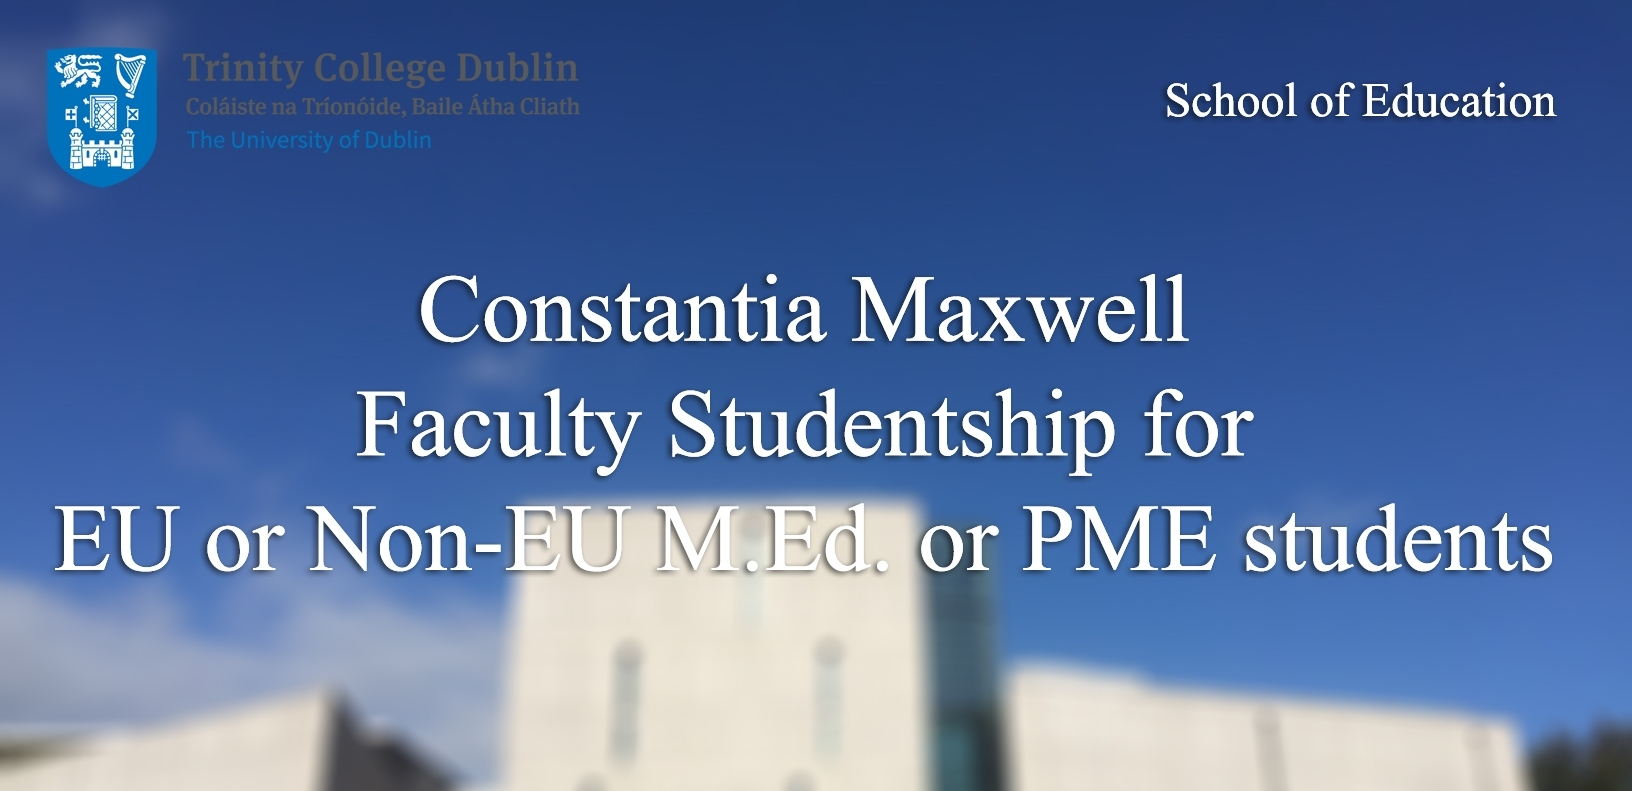 Constantia Maxwell Faculty Studentship 2019-2020 - School Of with regard to U Of M School Year 2019-2020